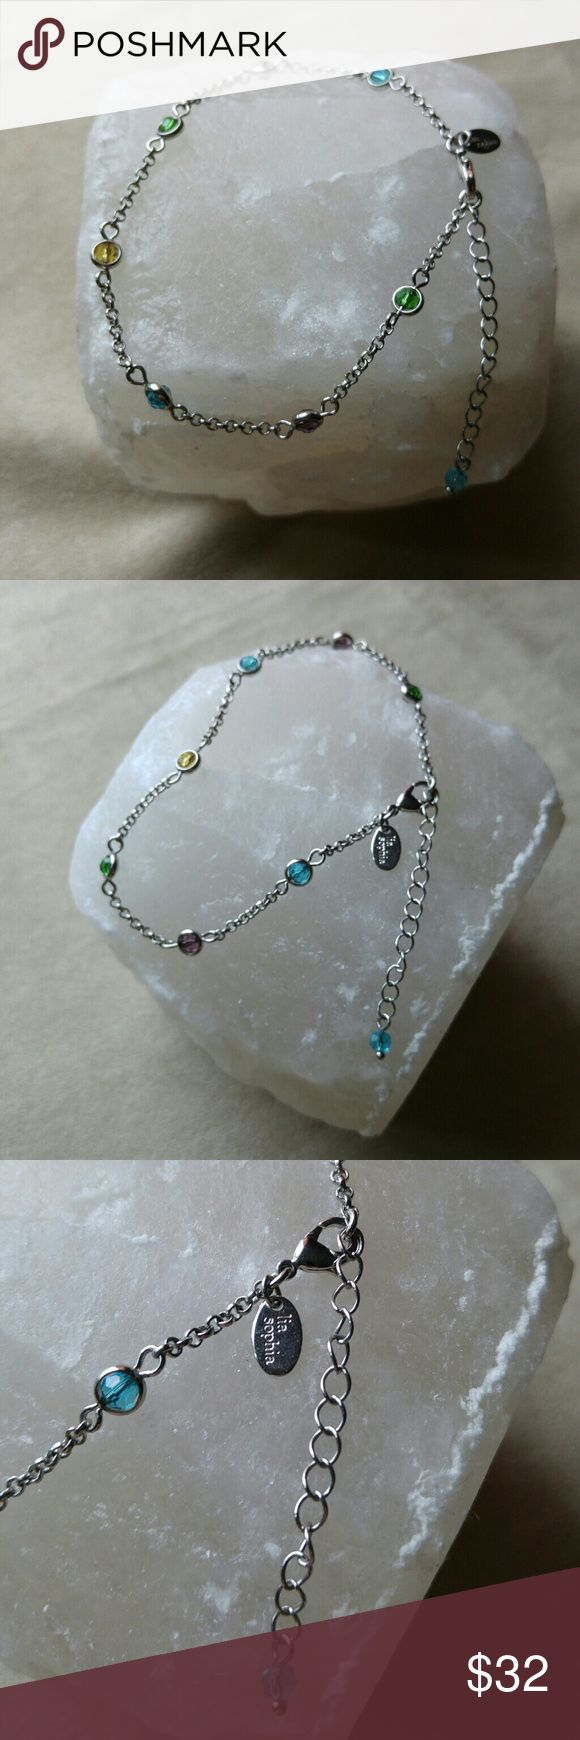 Lia Sophia Sweet Tart Ankle Bracelet Anklet Colorful Lia Sophia Ankle Bracelet features yellow, green, blue and purle pastel colored glass beads on a silver tone chain. Lobster clasp.  Adjustable 9.5 to 11.5 inches.   Excellent condition! Lia Sophia Jewelry